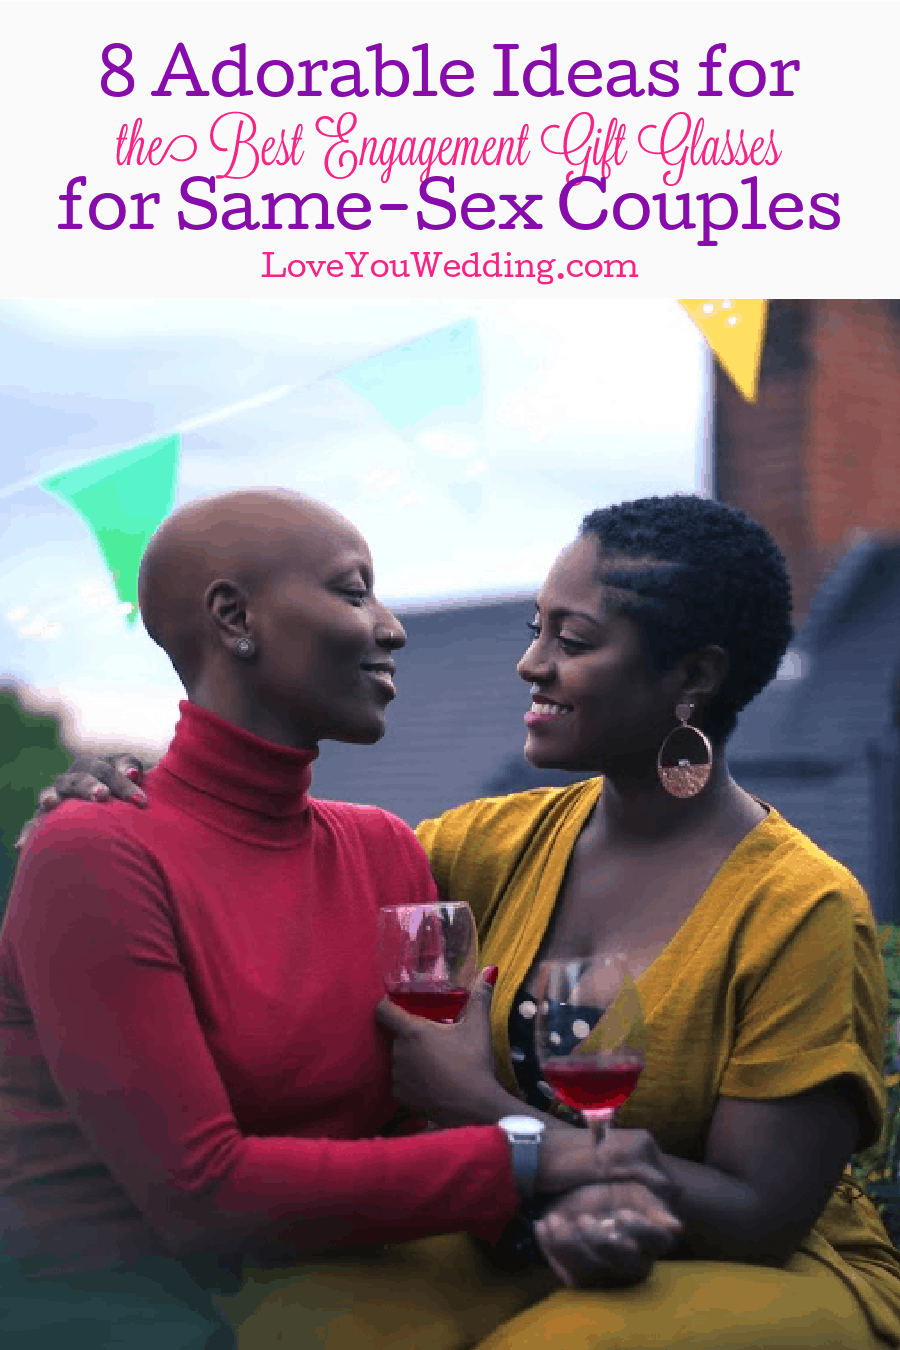 From cute to gorgeous to just plain funny, these lesbian and gay engagement gift glasses will be a huge hit with the couple. Check them out!